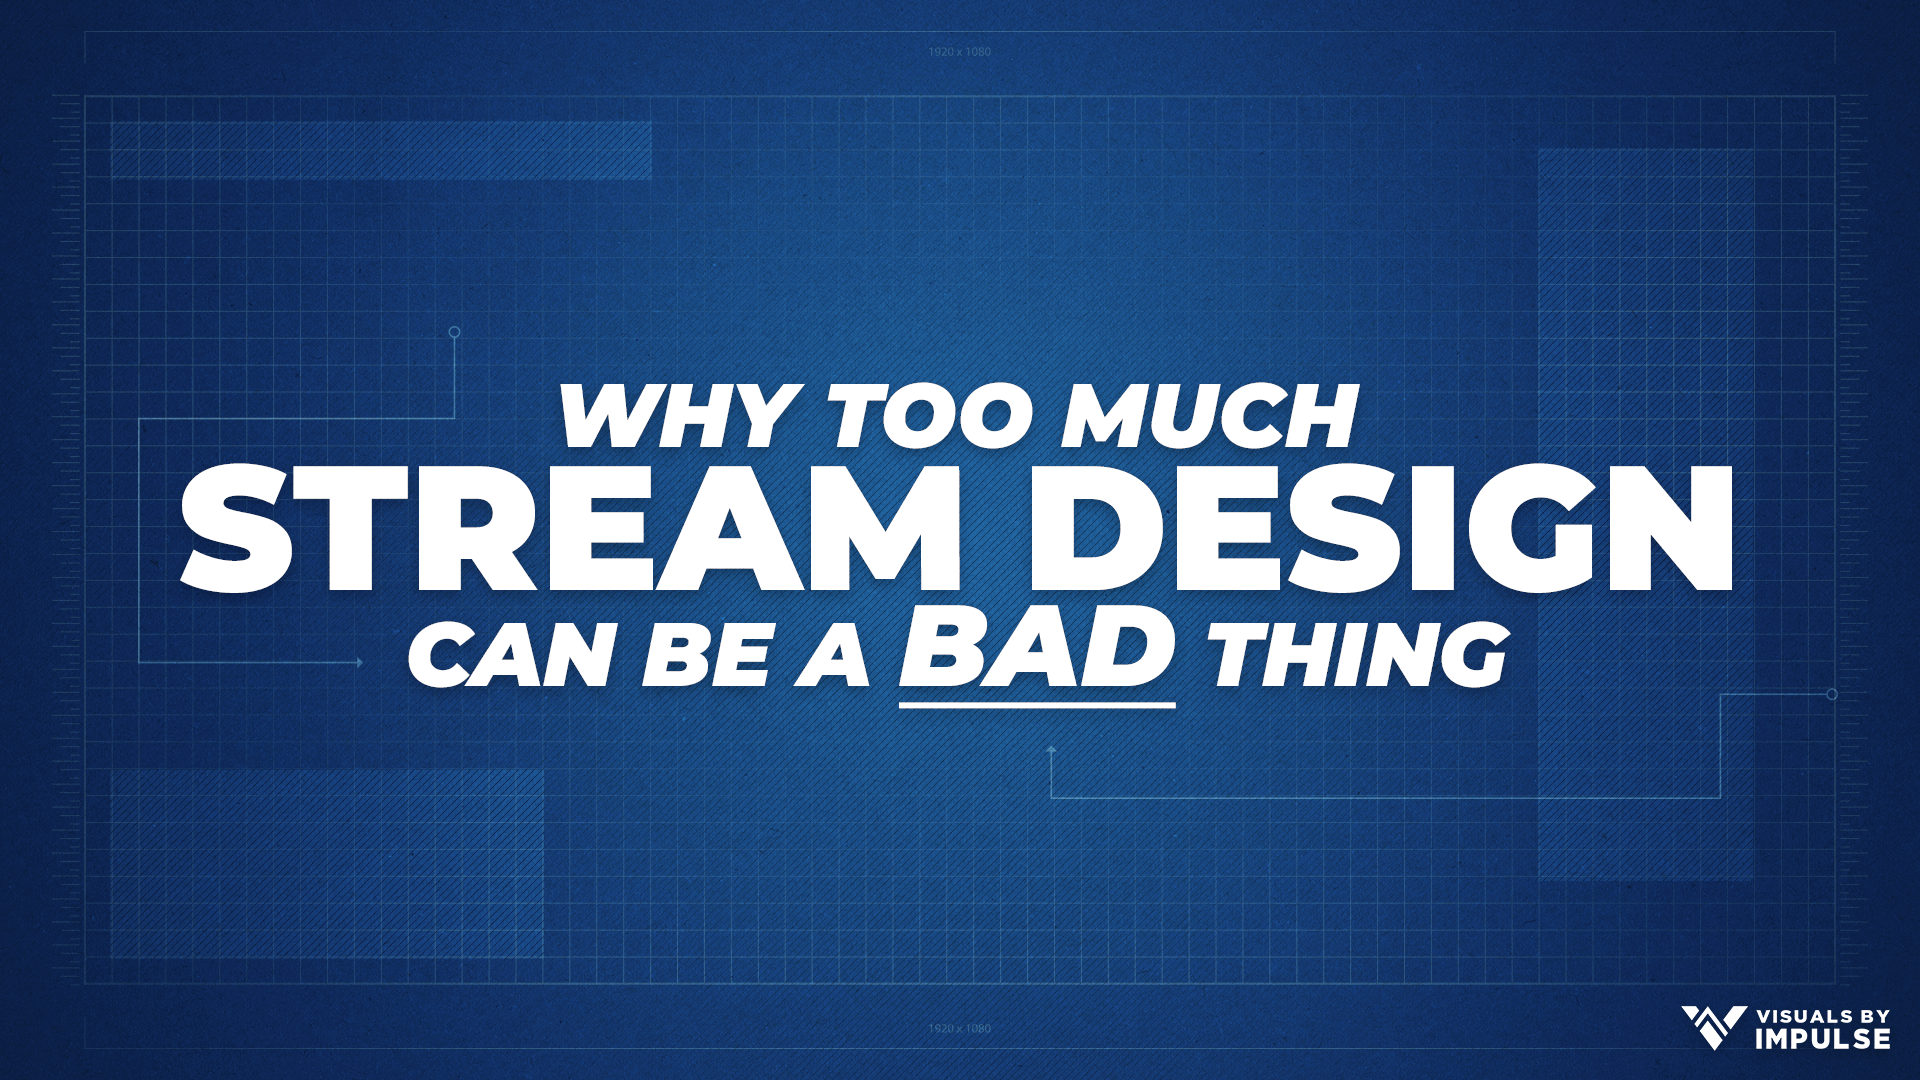 Why Too Much Stream Design Can Be A Bad Thing